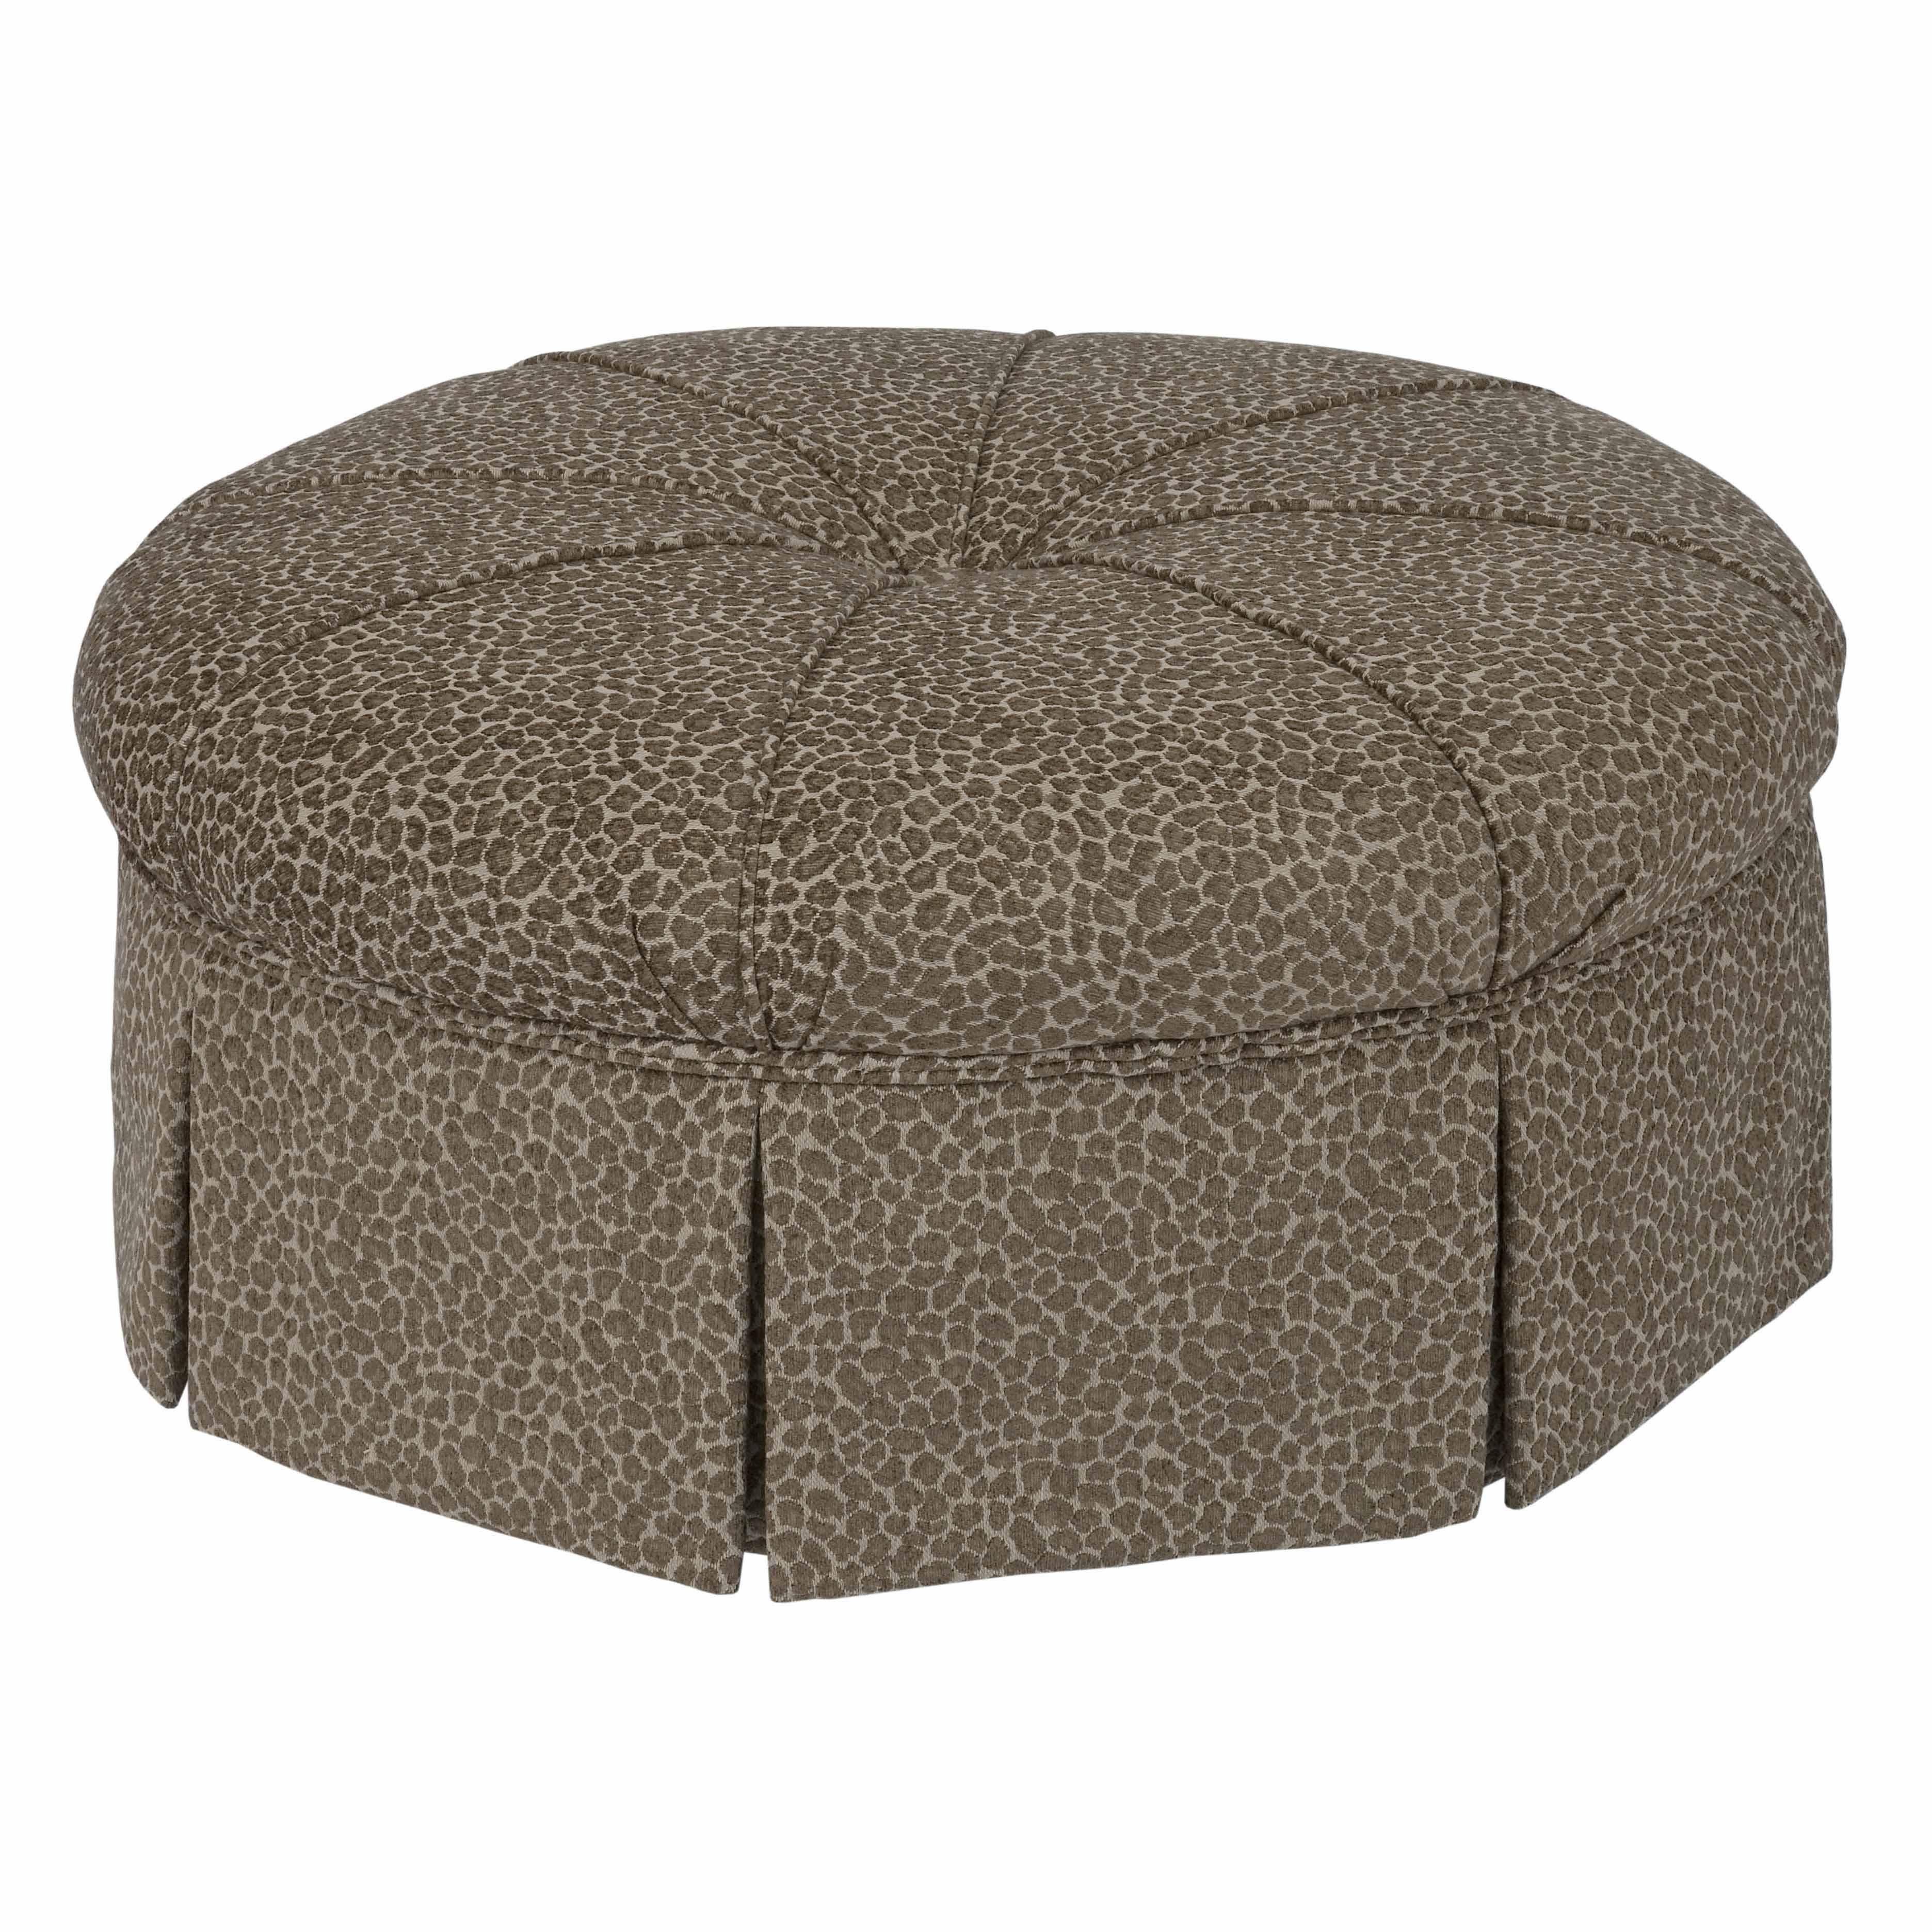 Accent Chairs Round Ottoman by Kincaid Furniture at Johnny Janosik